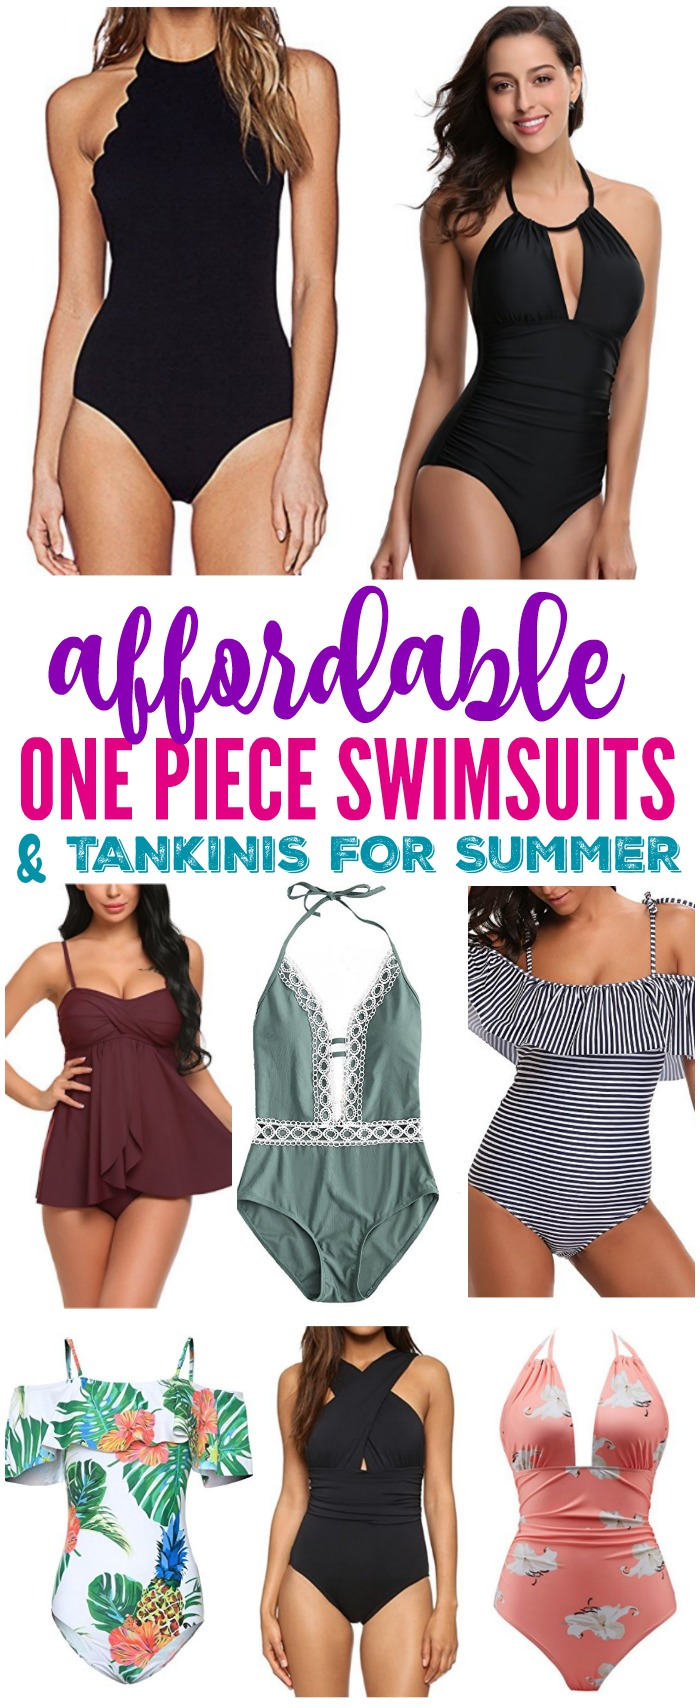 Here are some Cheap One Piece Swimsuits & Tankinis for Summer! These styles are easy, comfortable, and affordable modest bathing suits for women for the pool or beach!